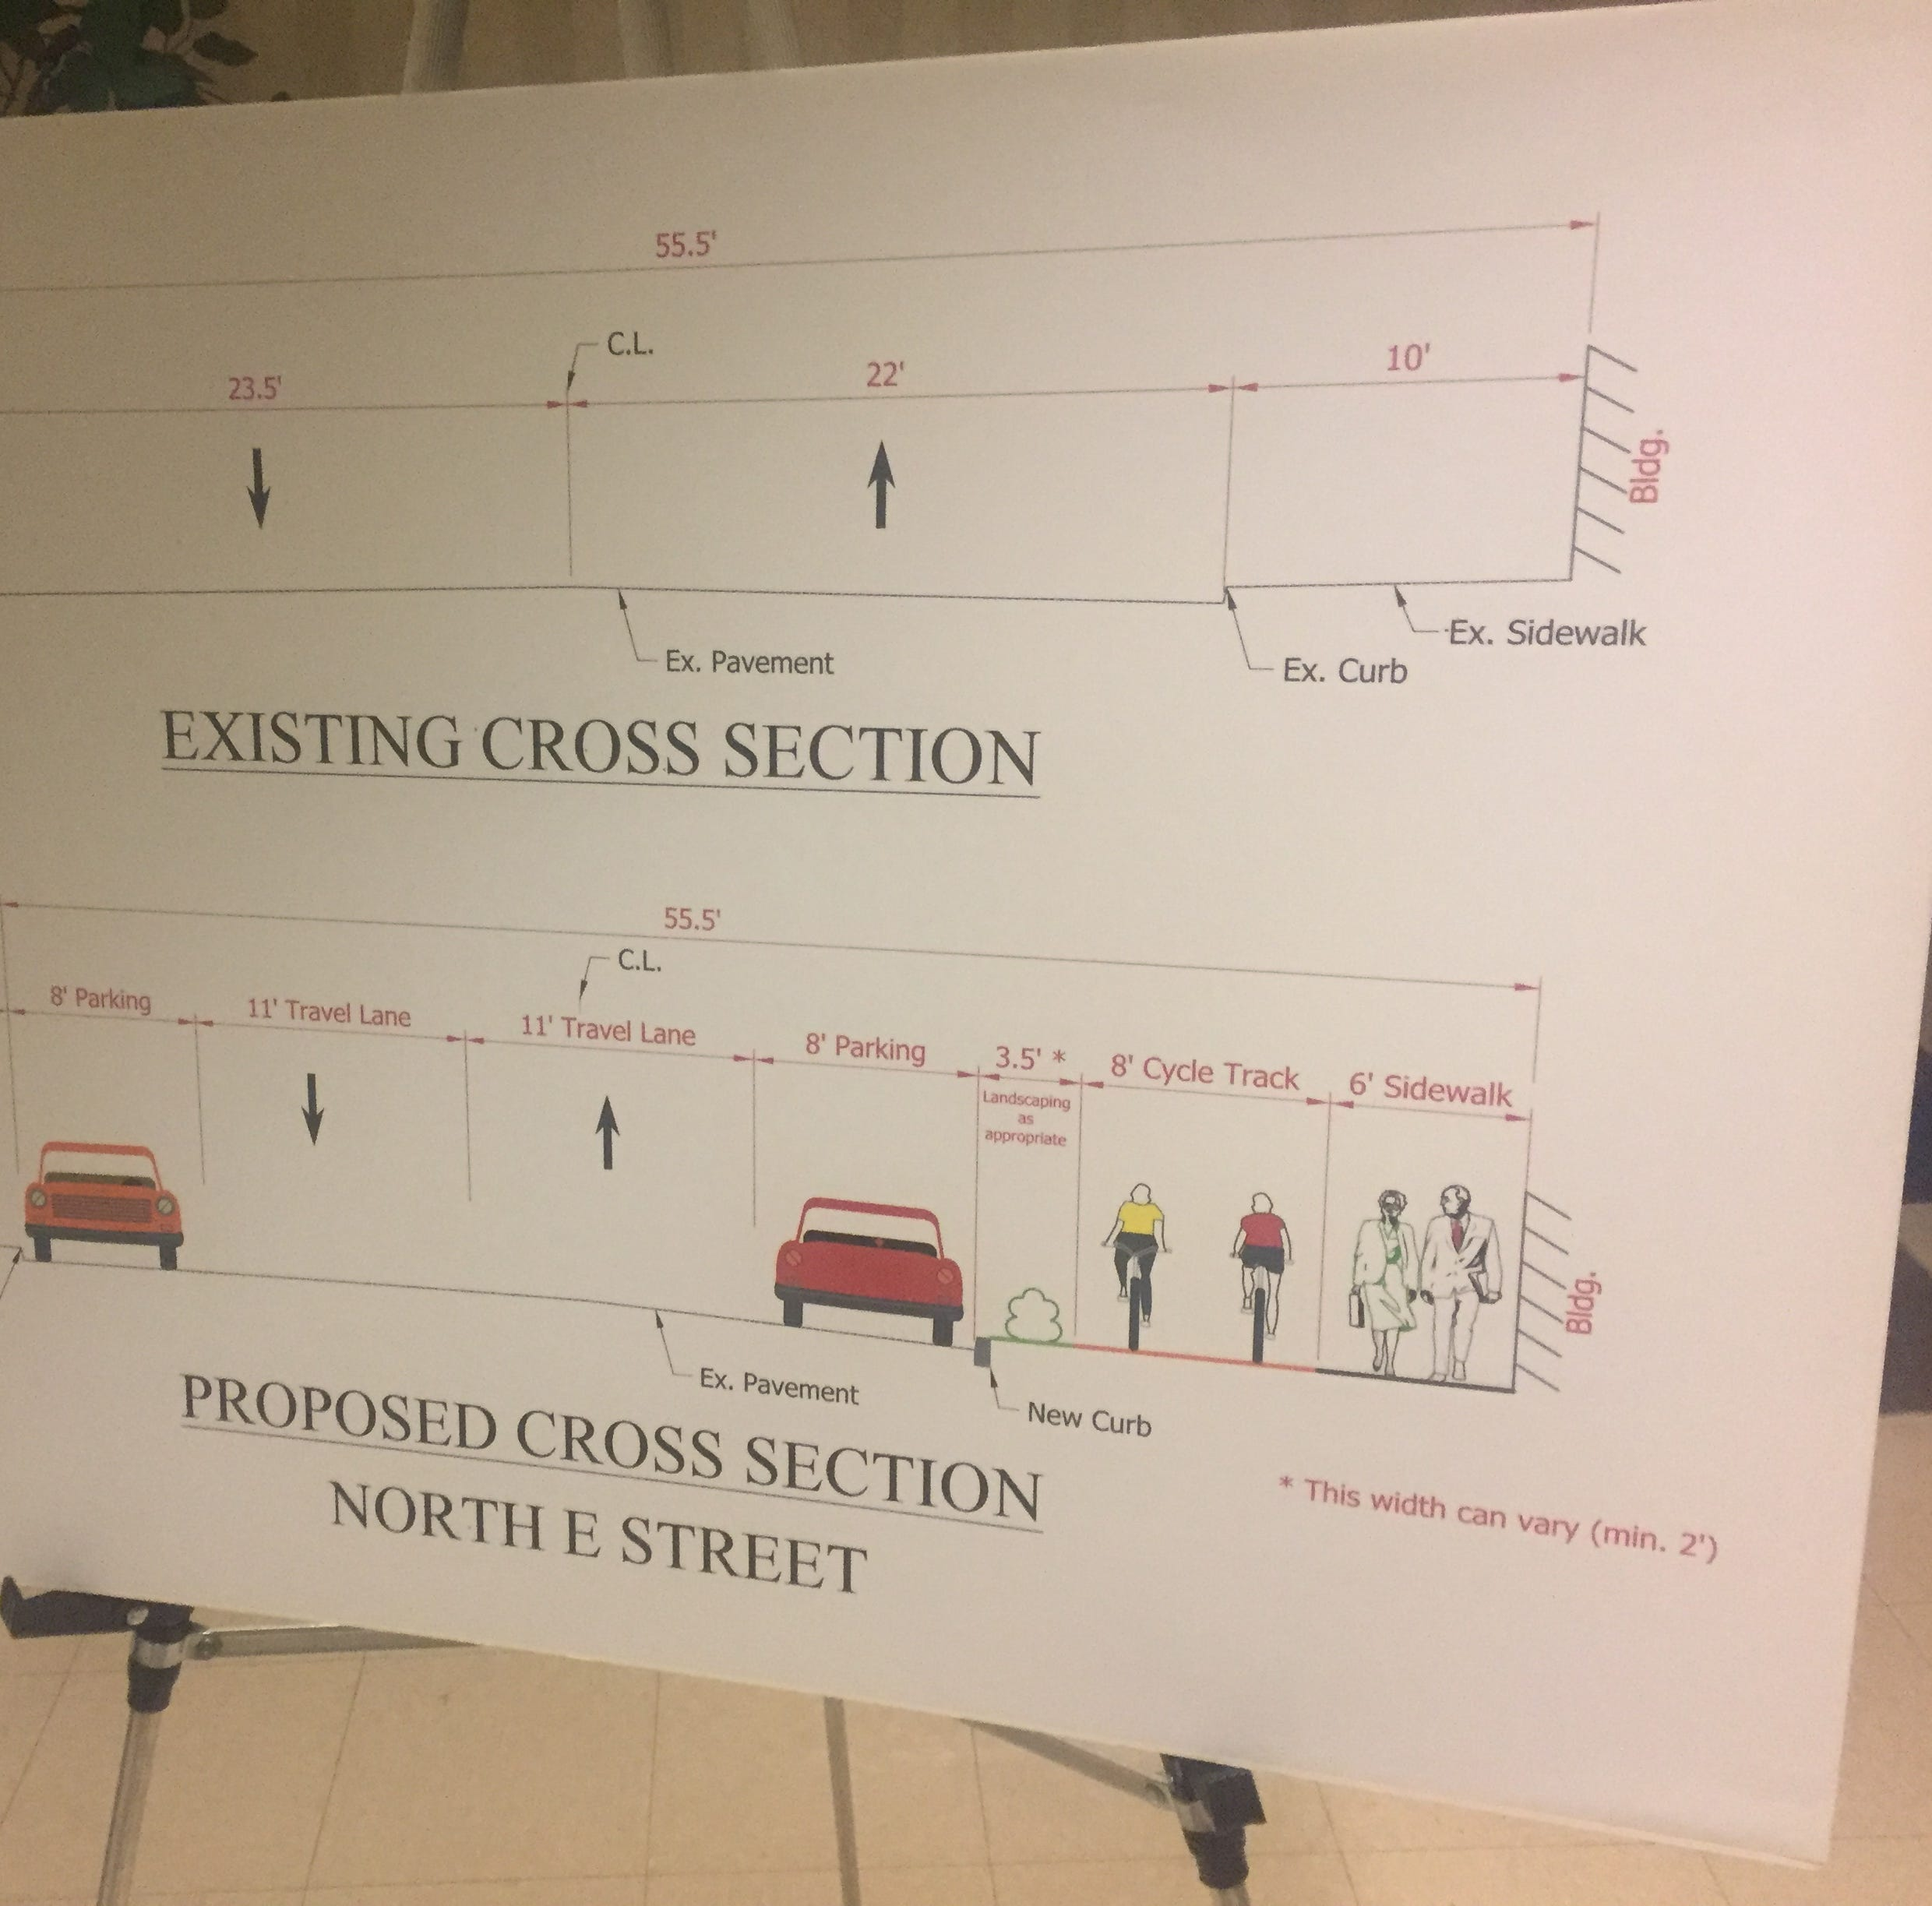 Crisis averted: Bike path and parking can co-exist so ordinance dies